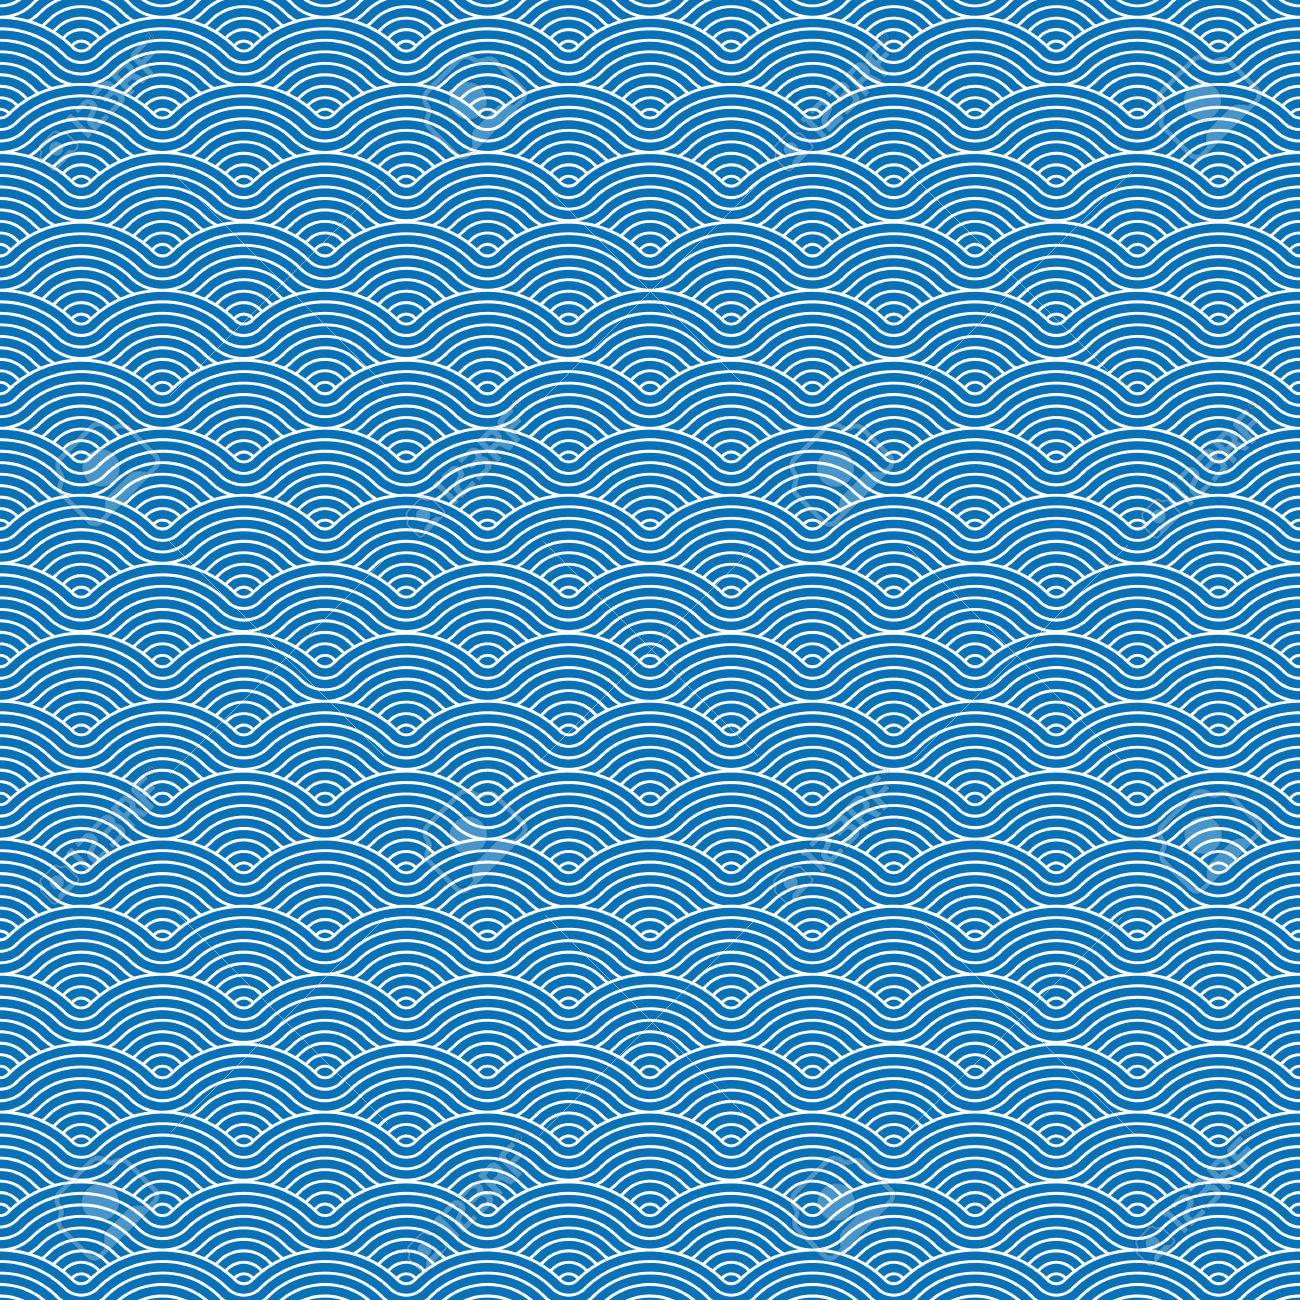 Colorful geometric repetitive vector curvy waves pattern texture background vector graphic illustration - 46085253